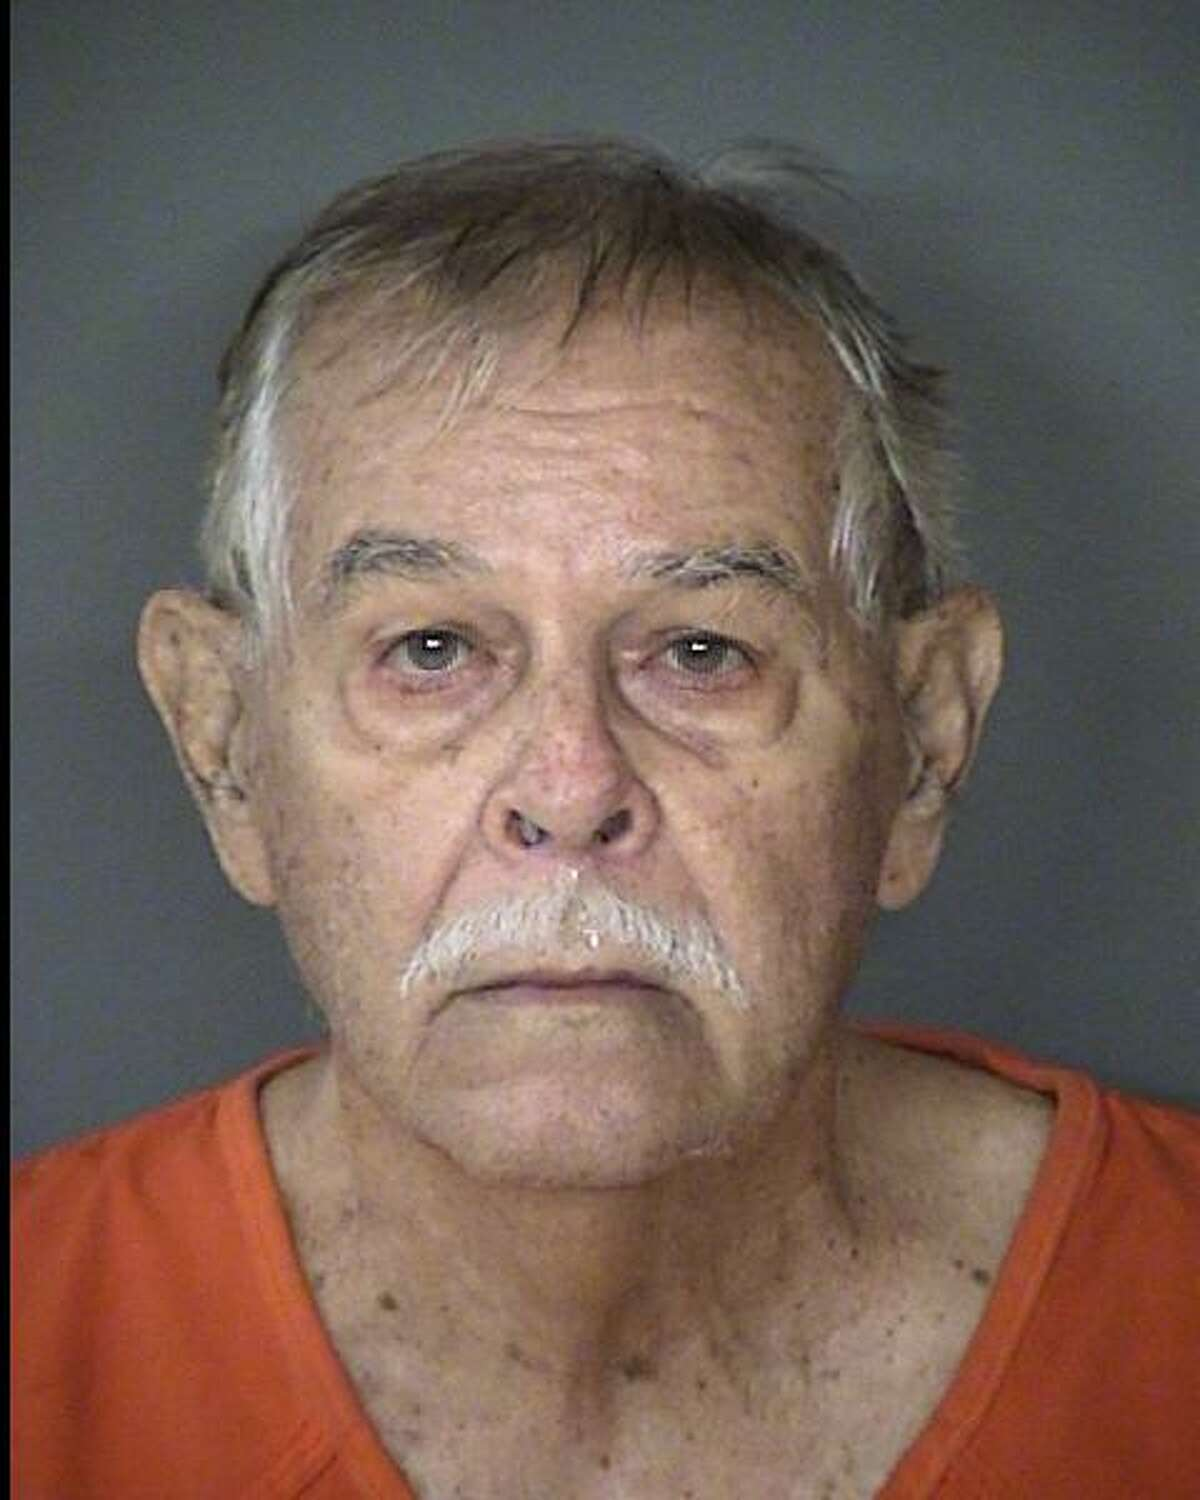 Donald Martin, 77, was arrested Tuesday, Nov. 20, 2018, and charged with cruelty to a non-livestock animal. Martin allegedly stood on a balcony and fired shots at a group of cats, fatally injuring one on Nov. 12 at the Spanish Oaks Apartments, 3206 Cripple Creek, according to Animal Care Services.